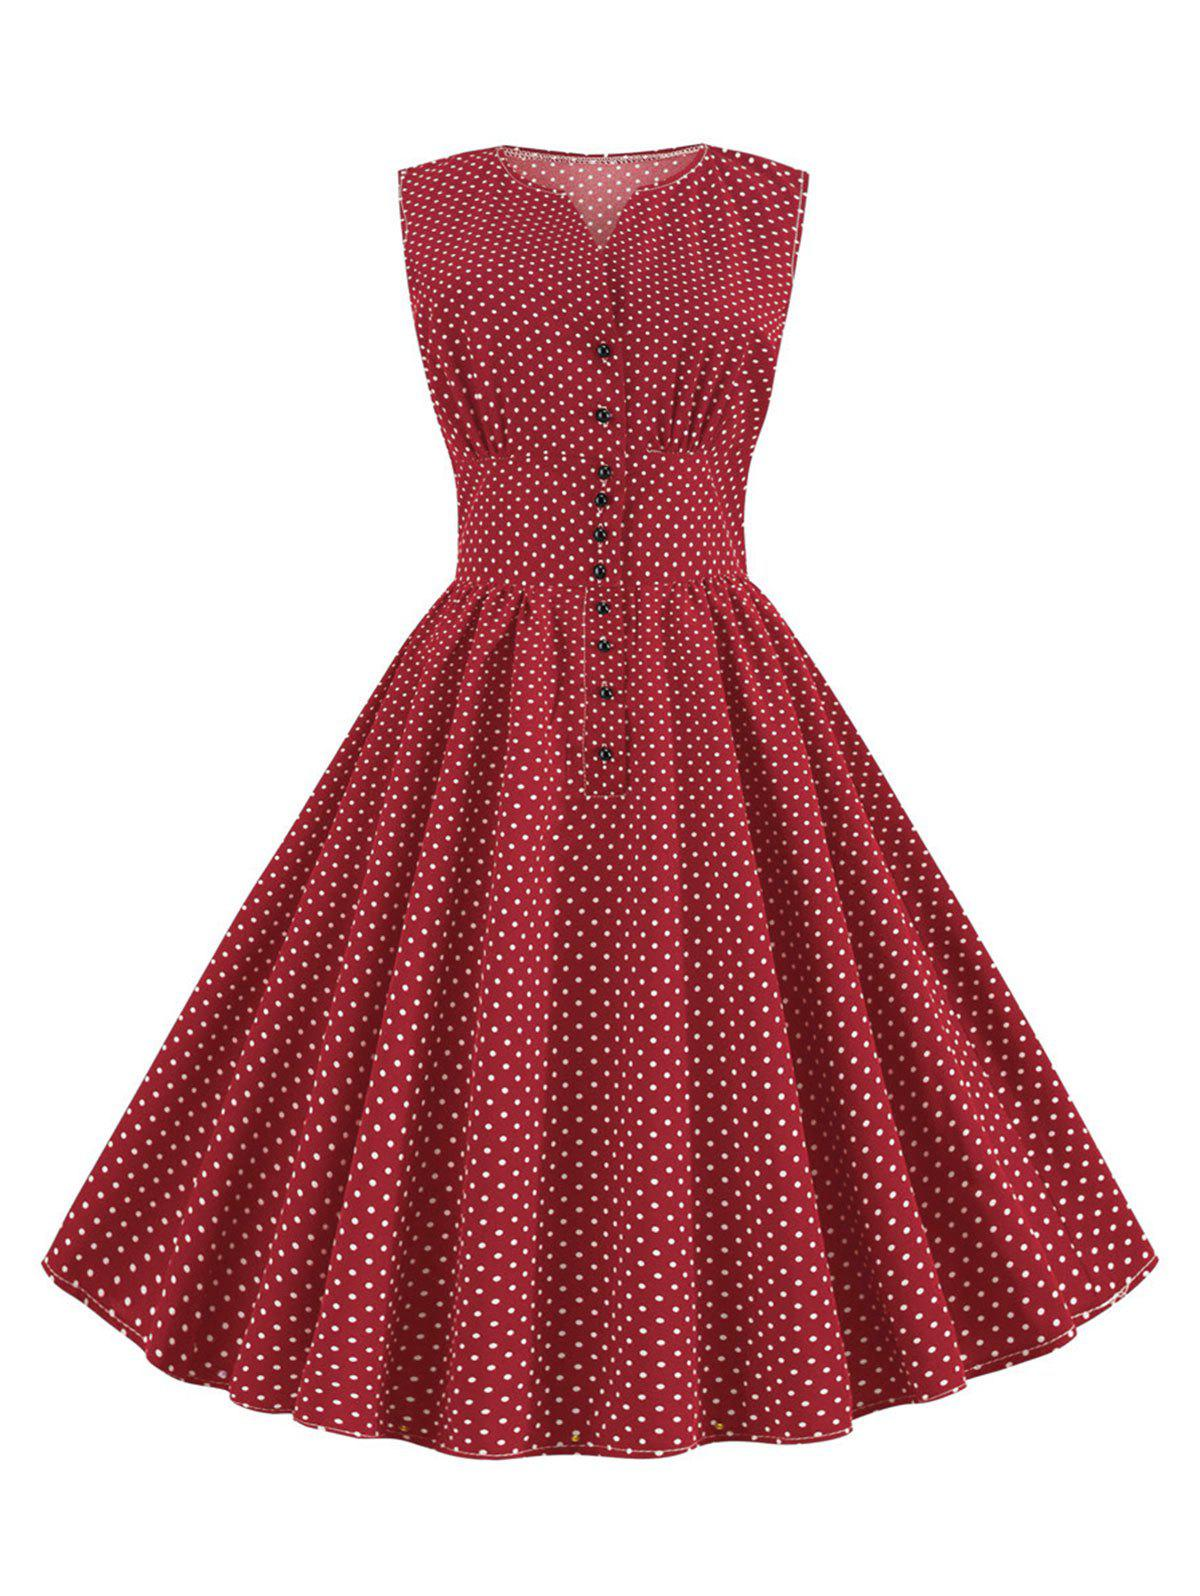 Discount Ditsy Polka Dot Button Front A Line Retro Dress